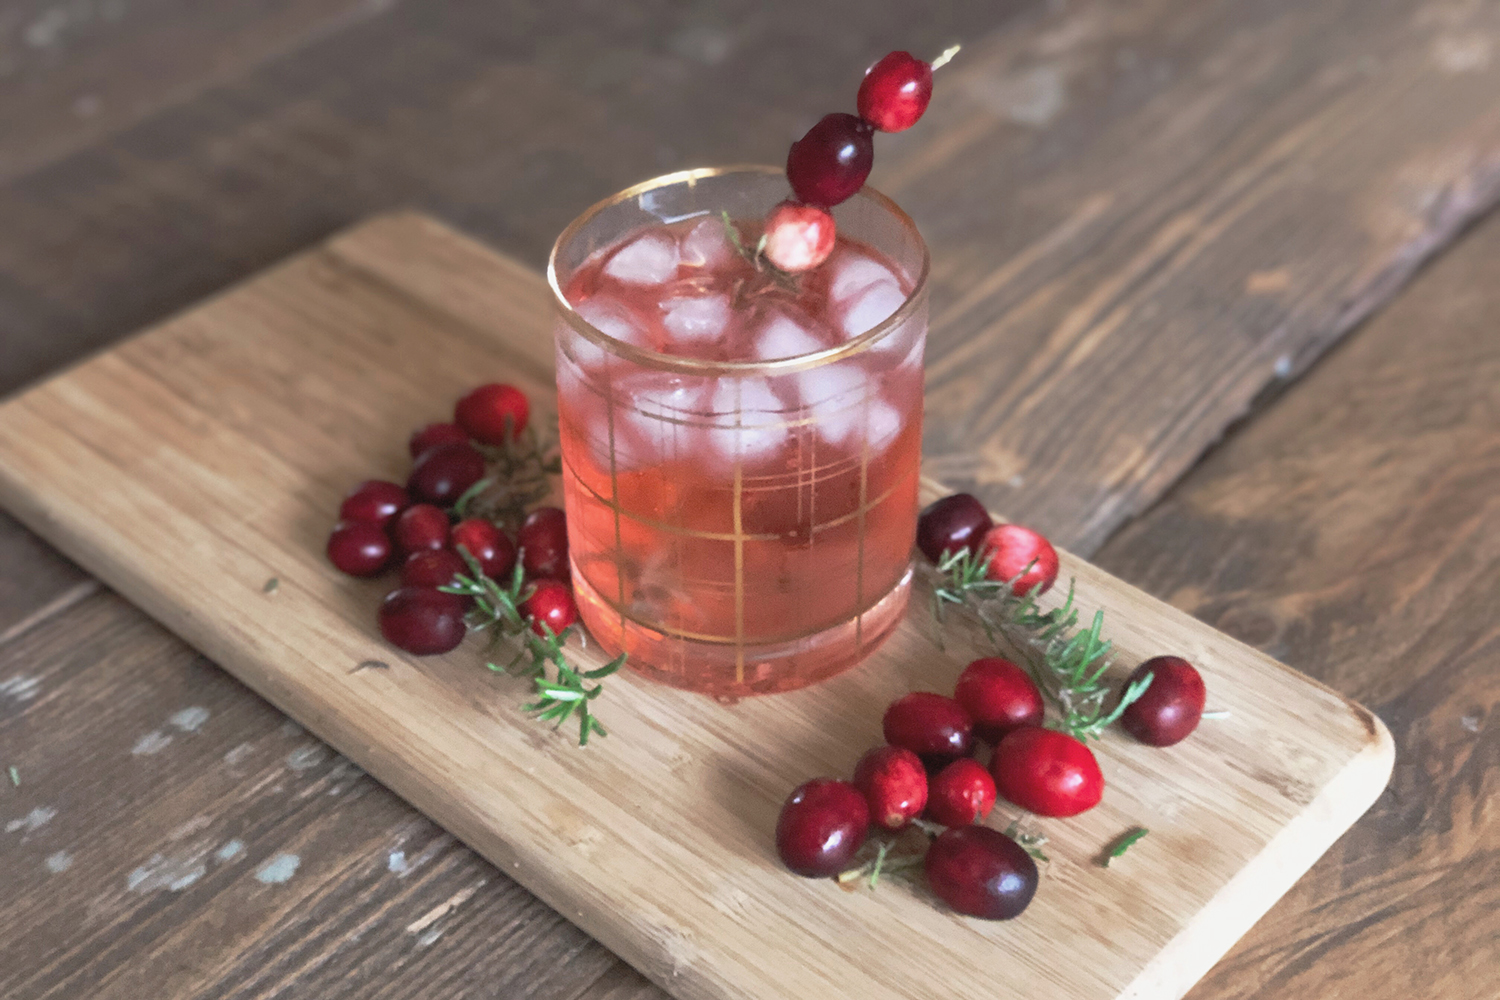 IBS friendly cocktail mocktail, red cocktail in a glass surrounded by fresh cranberries and rosemary